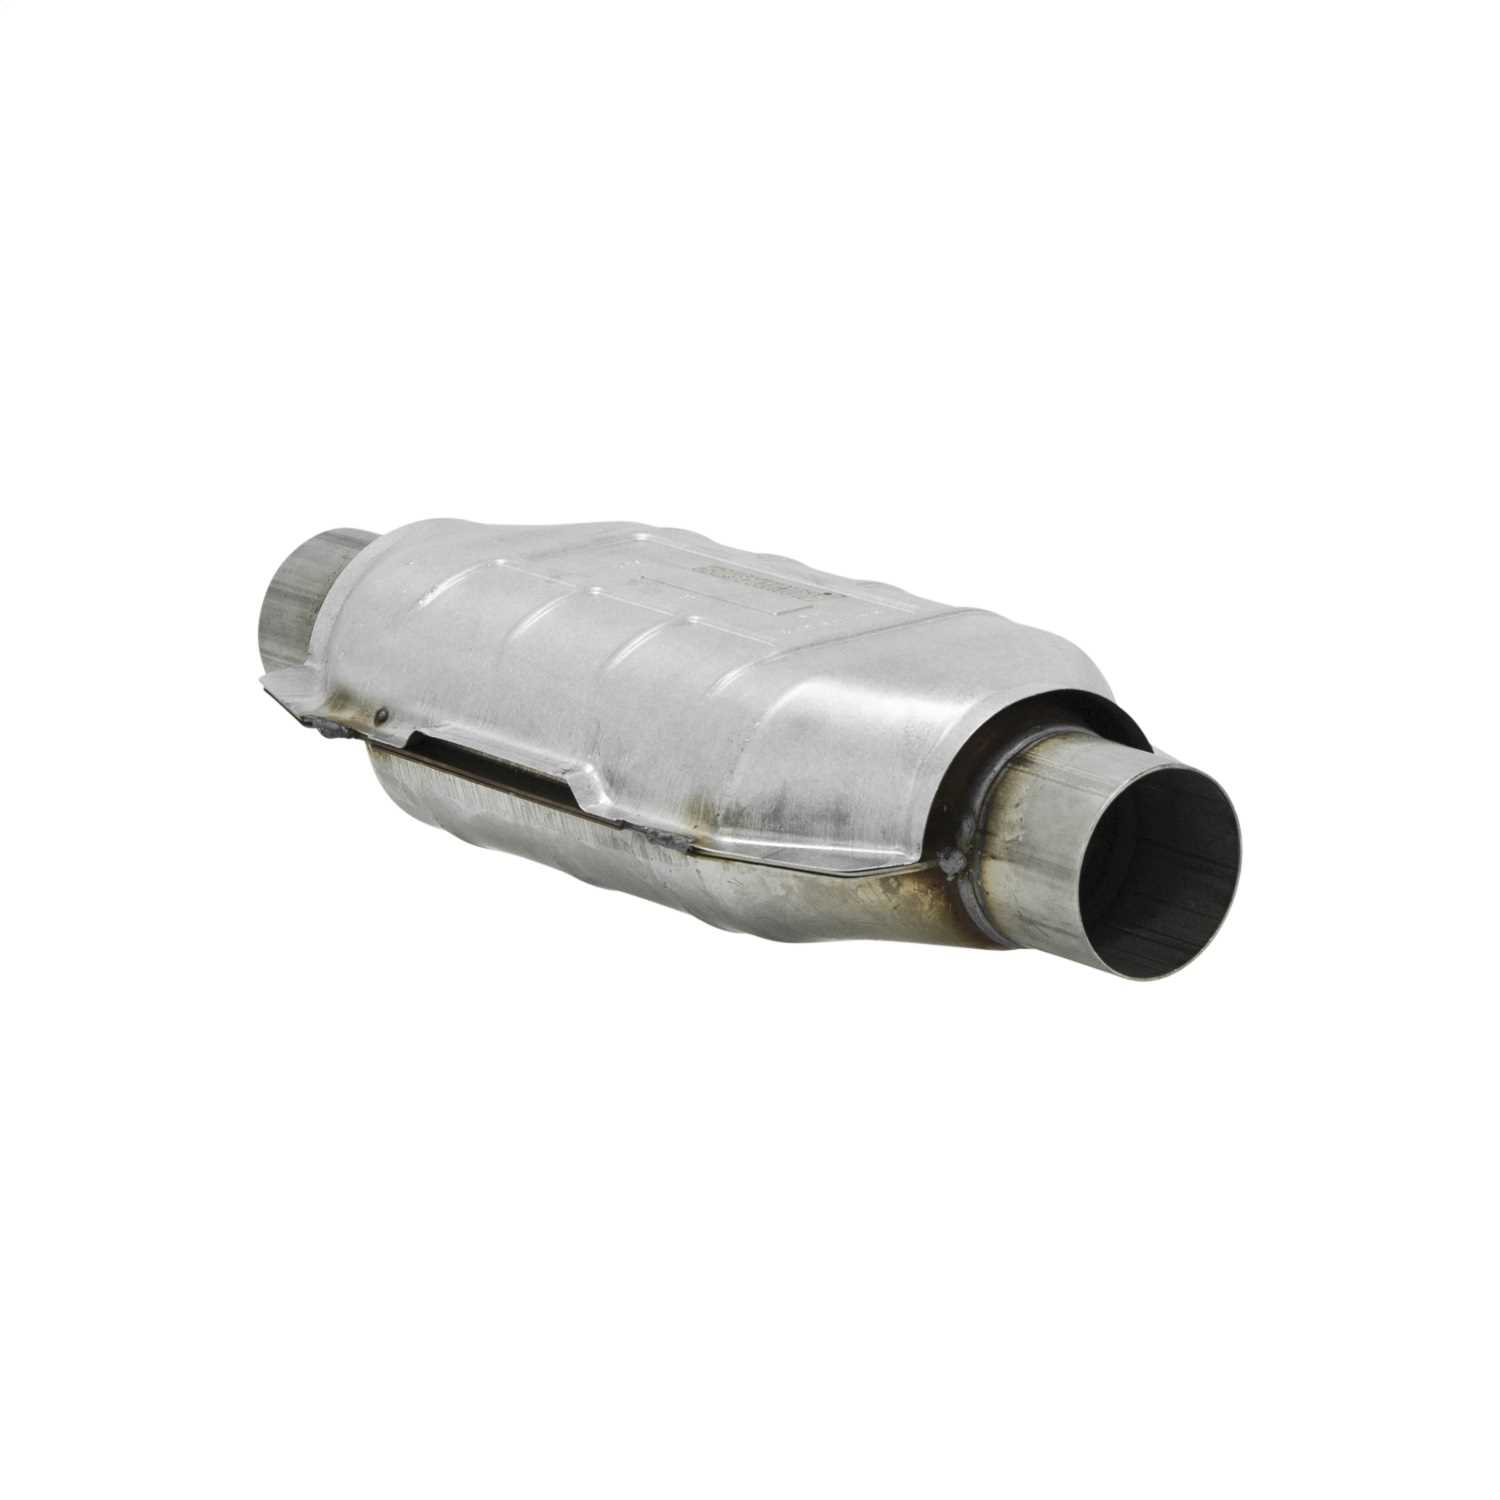 2840225 Flowmaster 49 State Catalytic Converters Universal Catalytic Converter